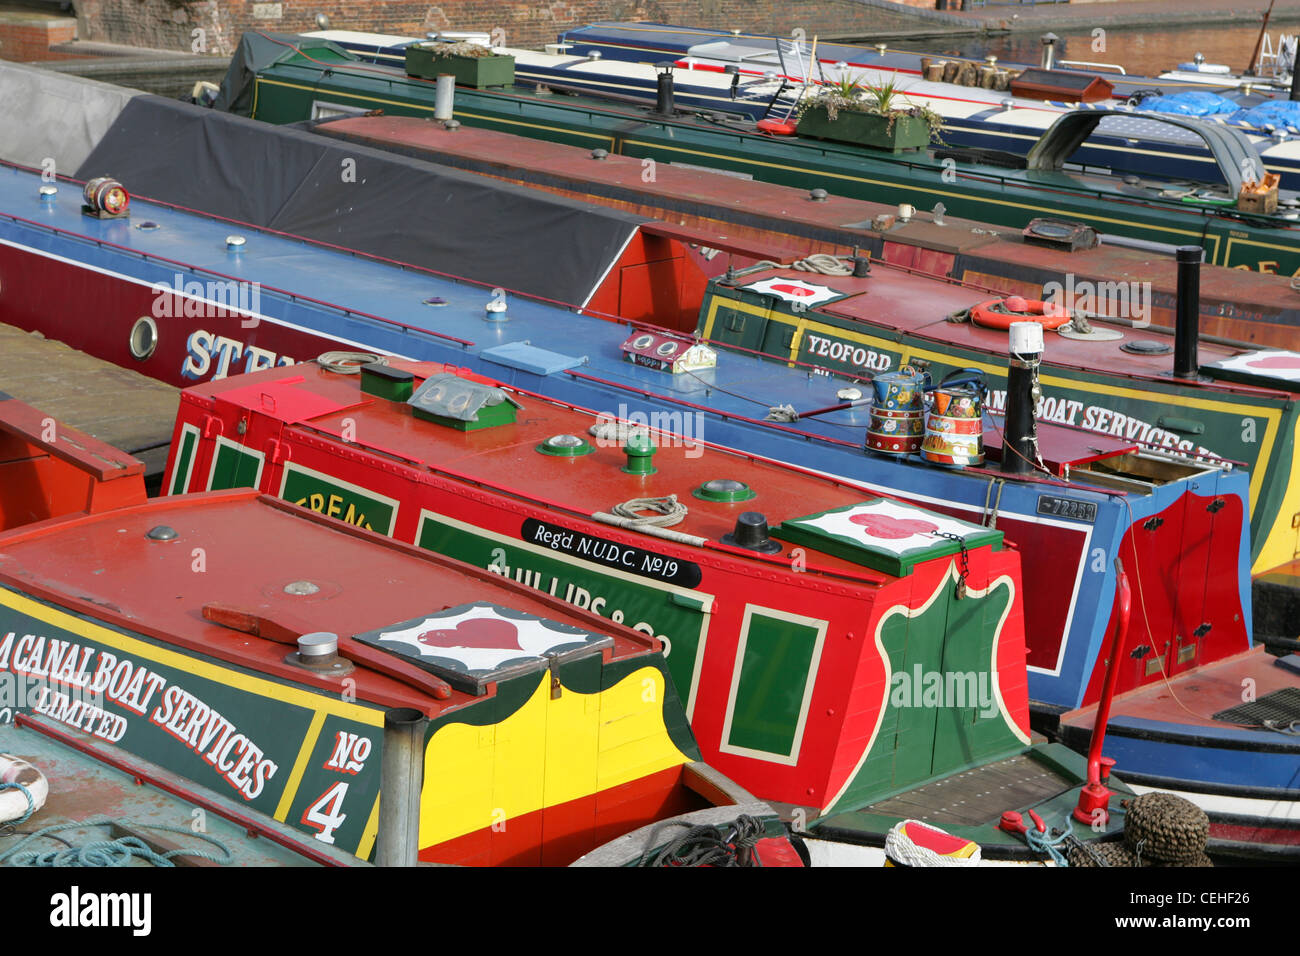 Selection of narrow boats moored up in birminham city centre on the birmingham and worcester canal, feb 2012. - Stock Image